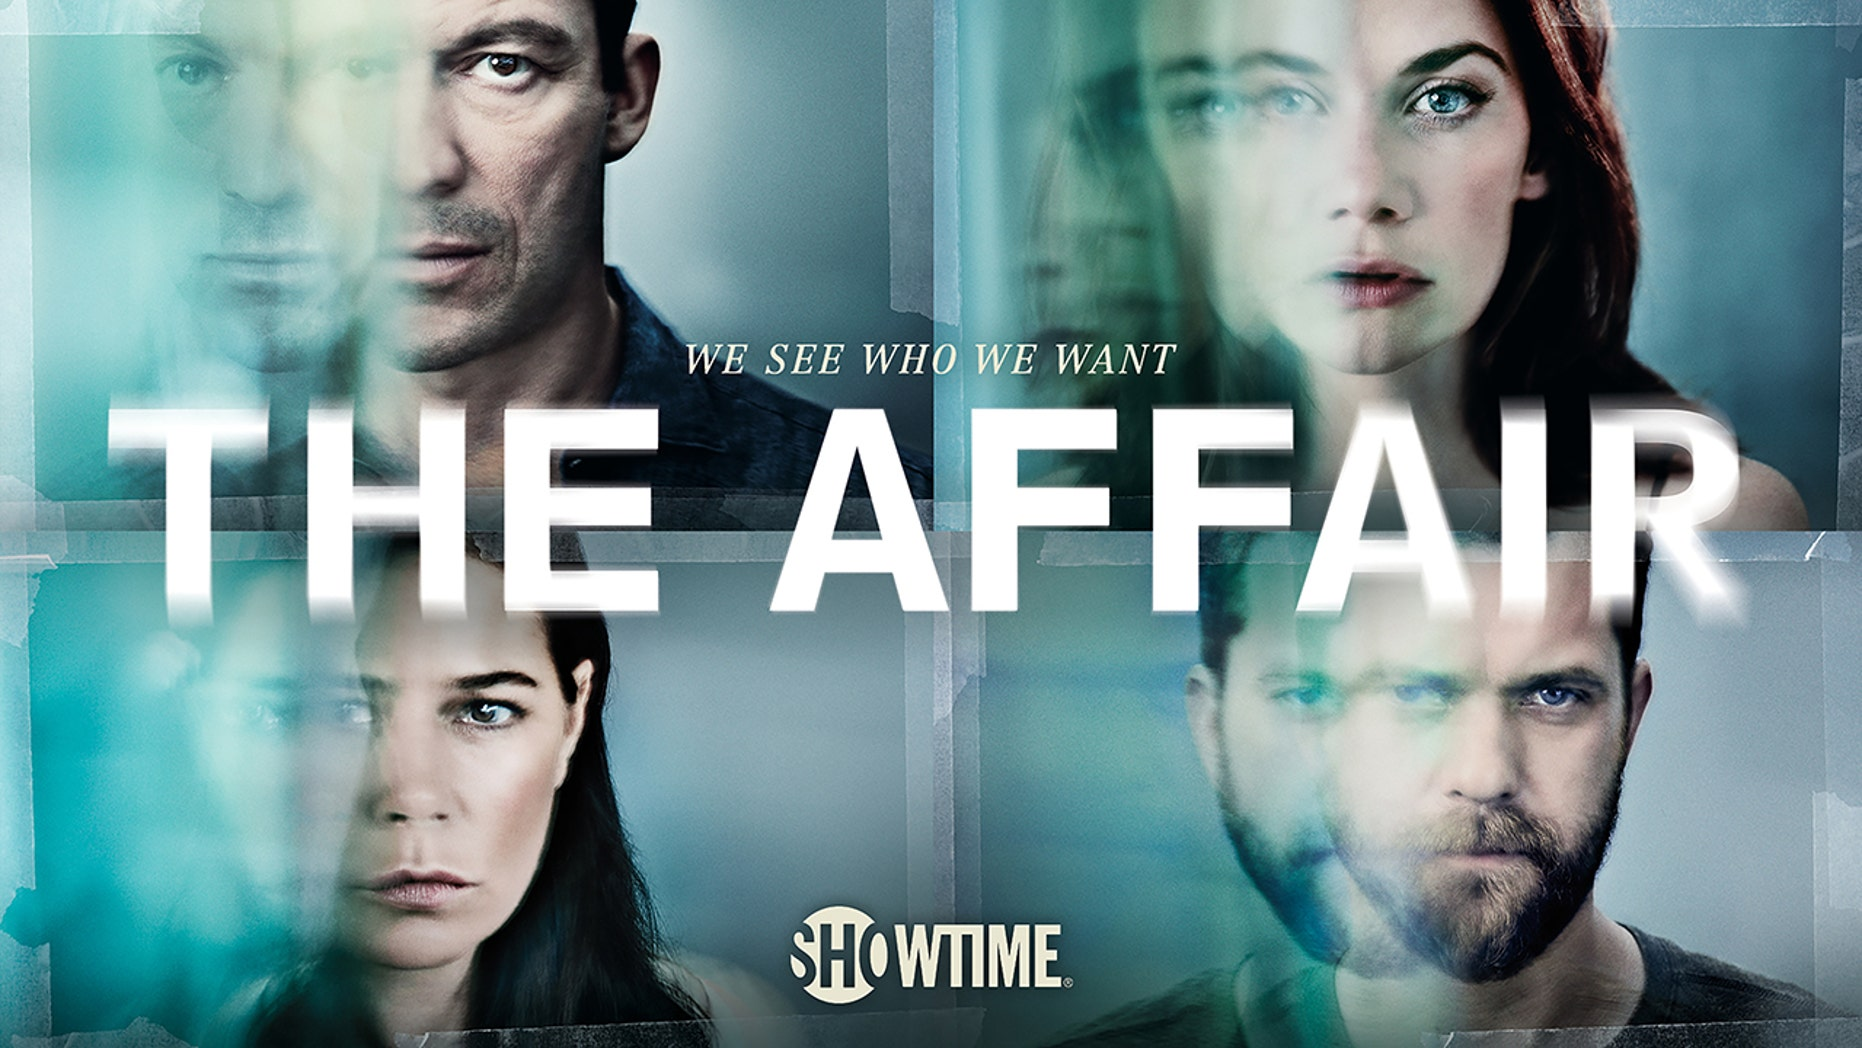 Maura Tierney as Helen, Dominic West as Noah Solloway, Ruth Wilson as Alison and Joshua Jackson as Cole in The Affair (season 3 key art). - Photo: Courtesy of SHOWTIME